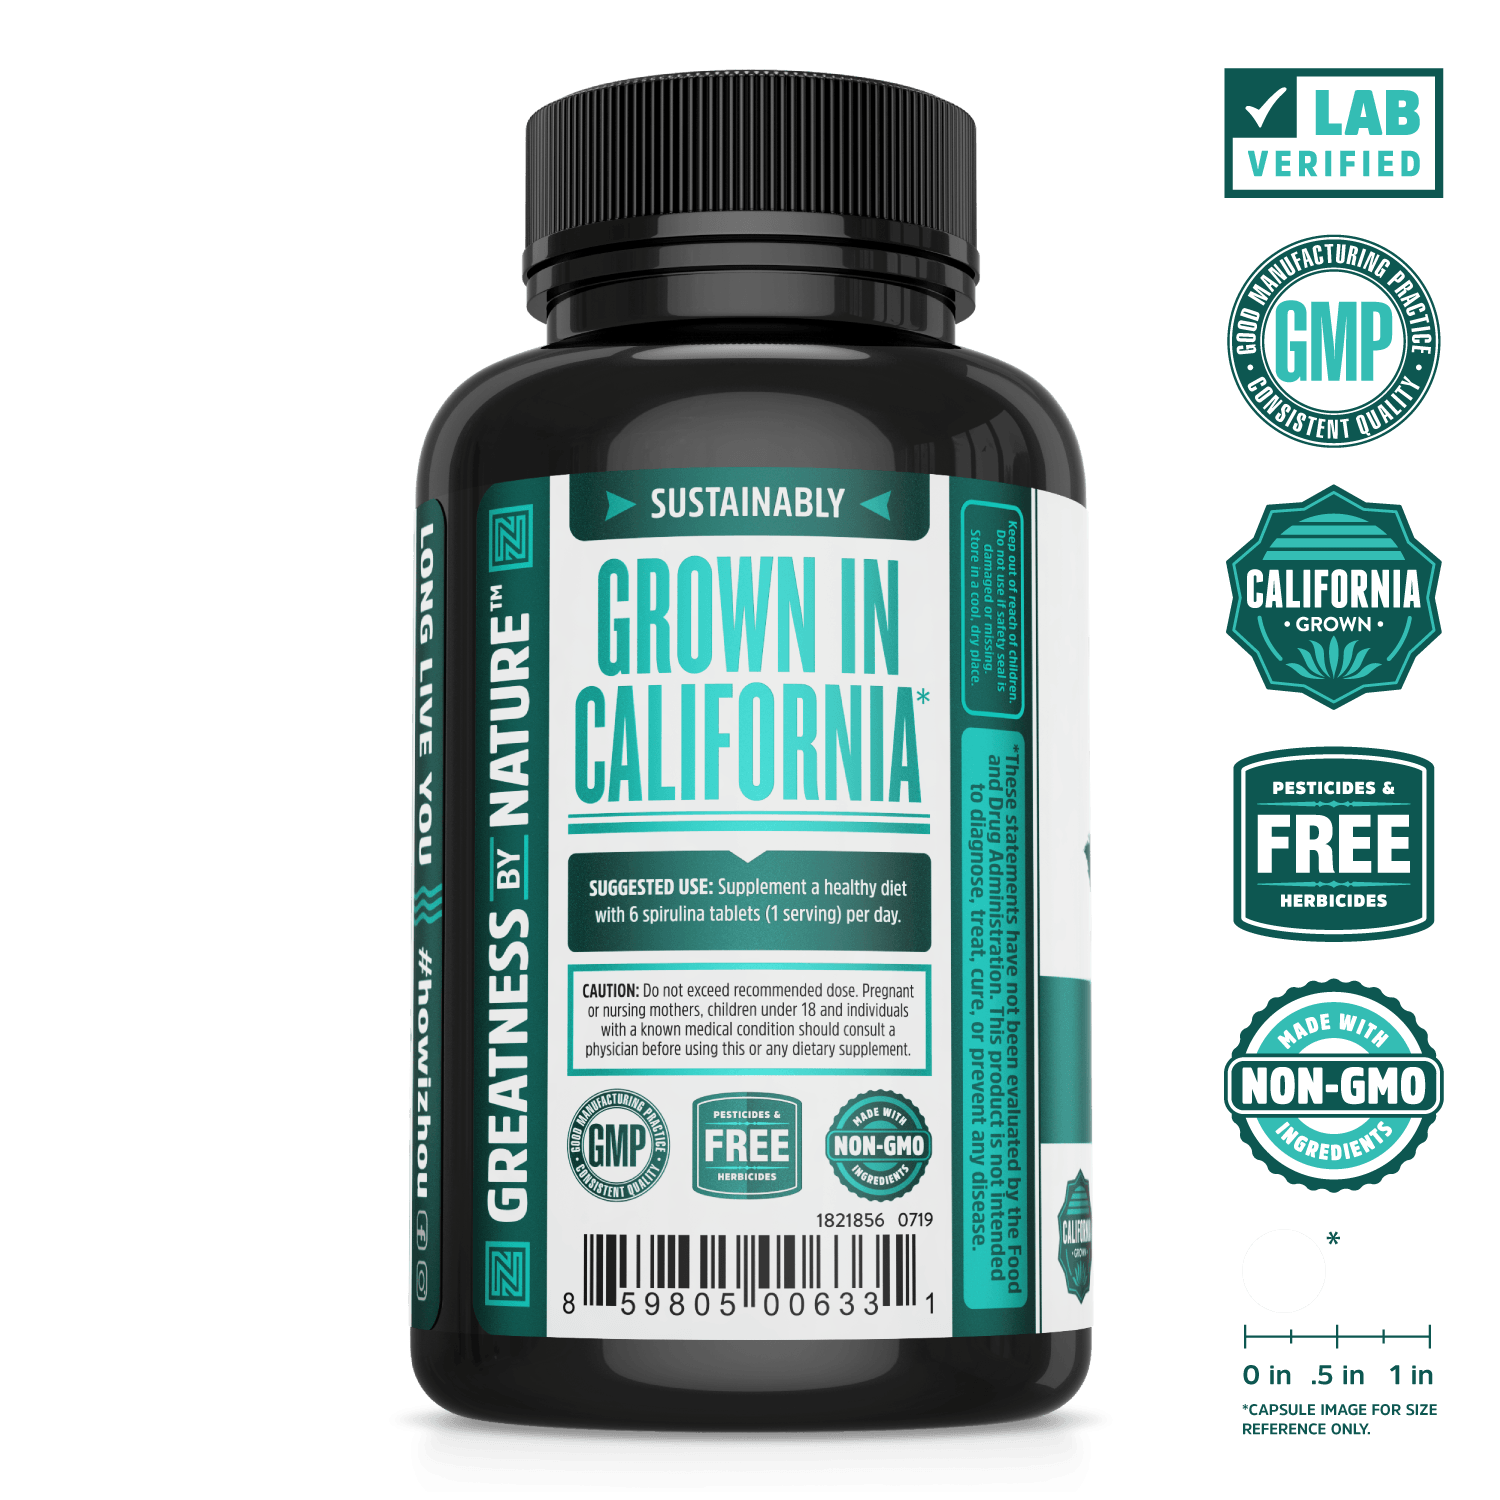 Zhou Nutrition Sustainably Grown Spirulina Tablets. Lab verified, good manufacturing practices, california grown, pesticides & herbicides free, made with non-GMO ingredients